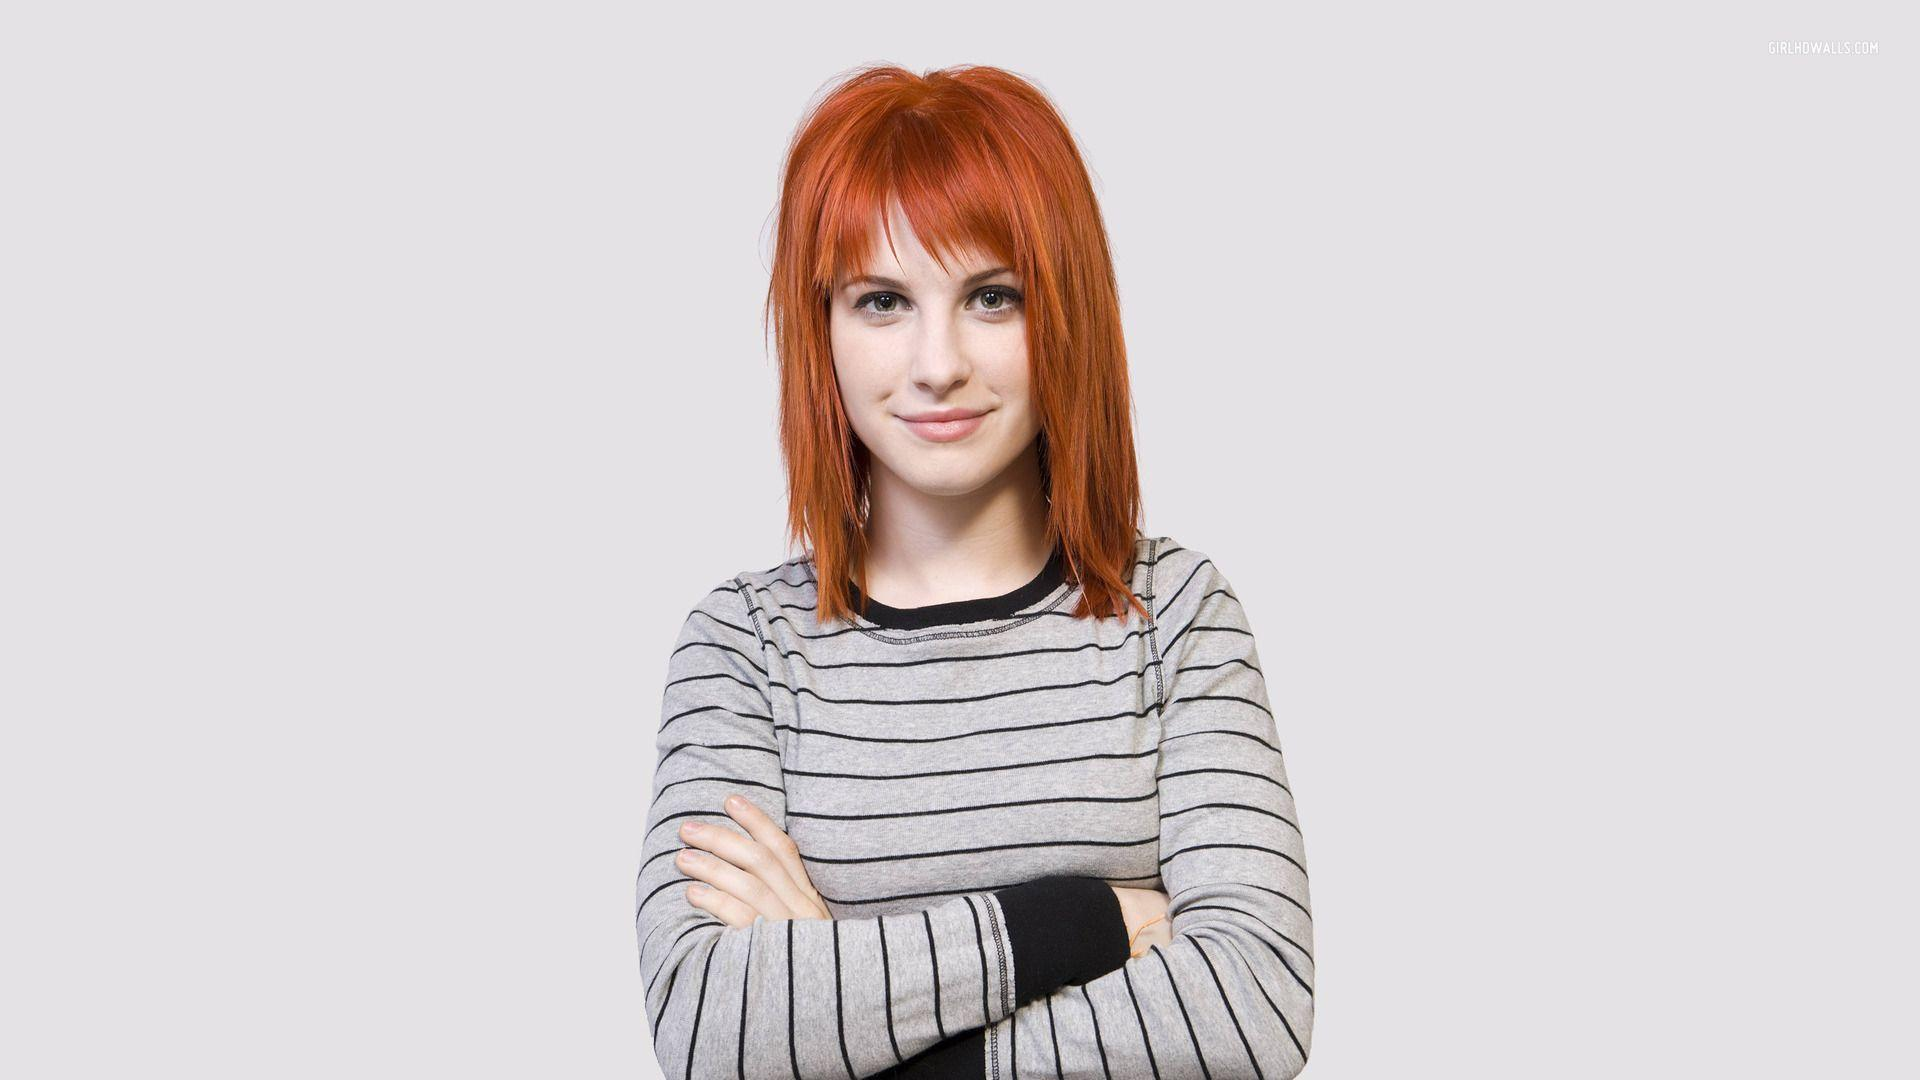 Hayley Williams Wallpapers HD - Wallpaper Cave